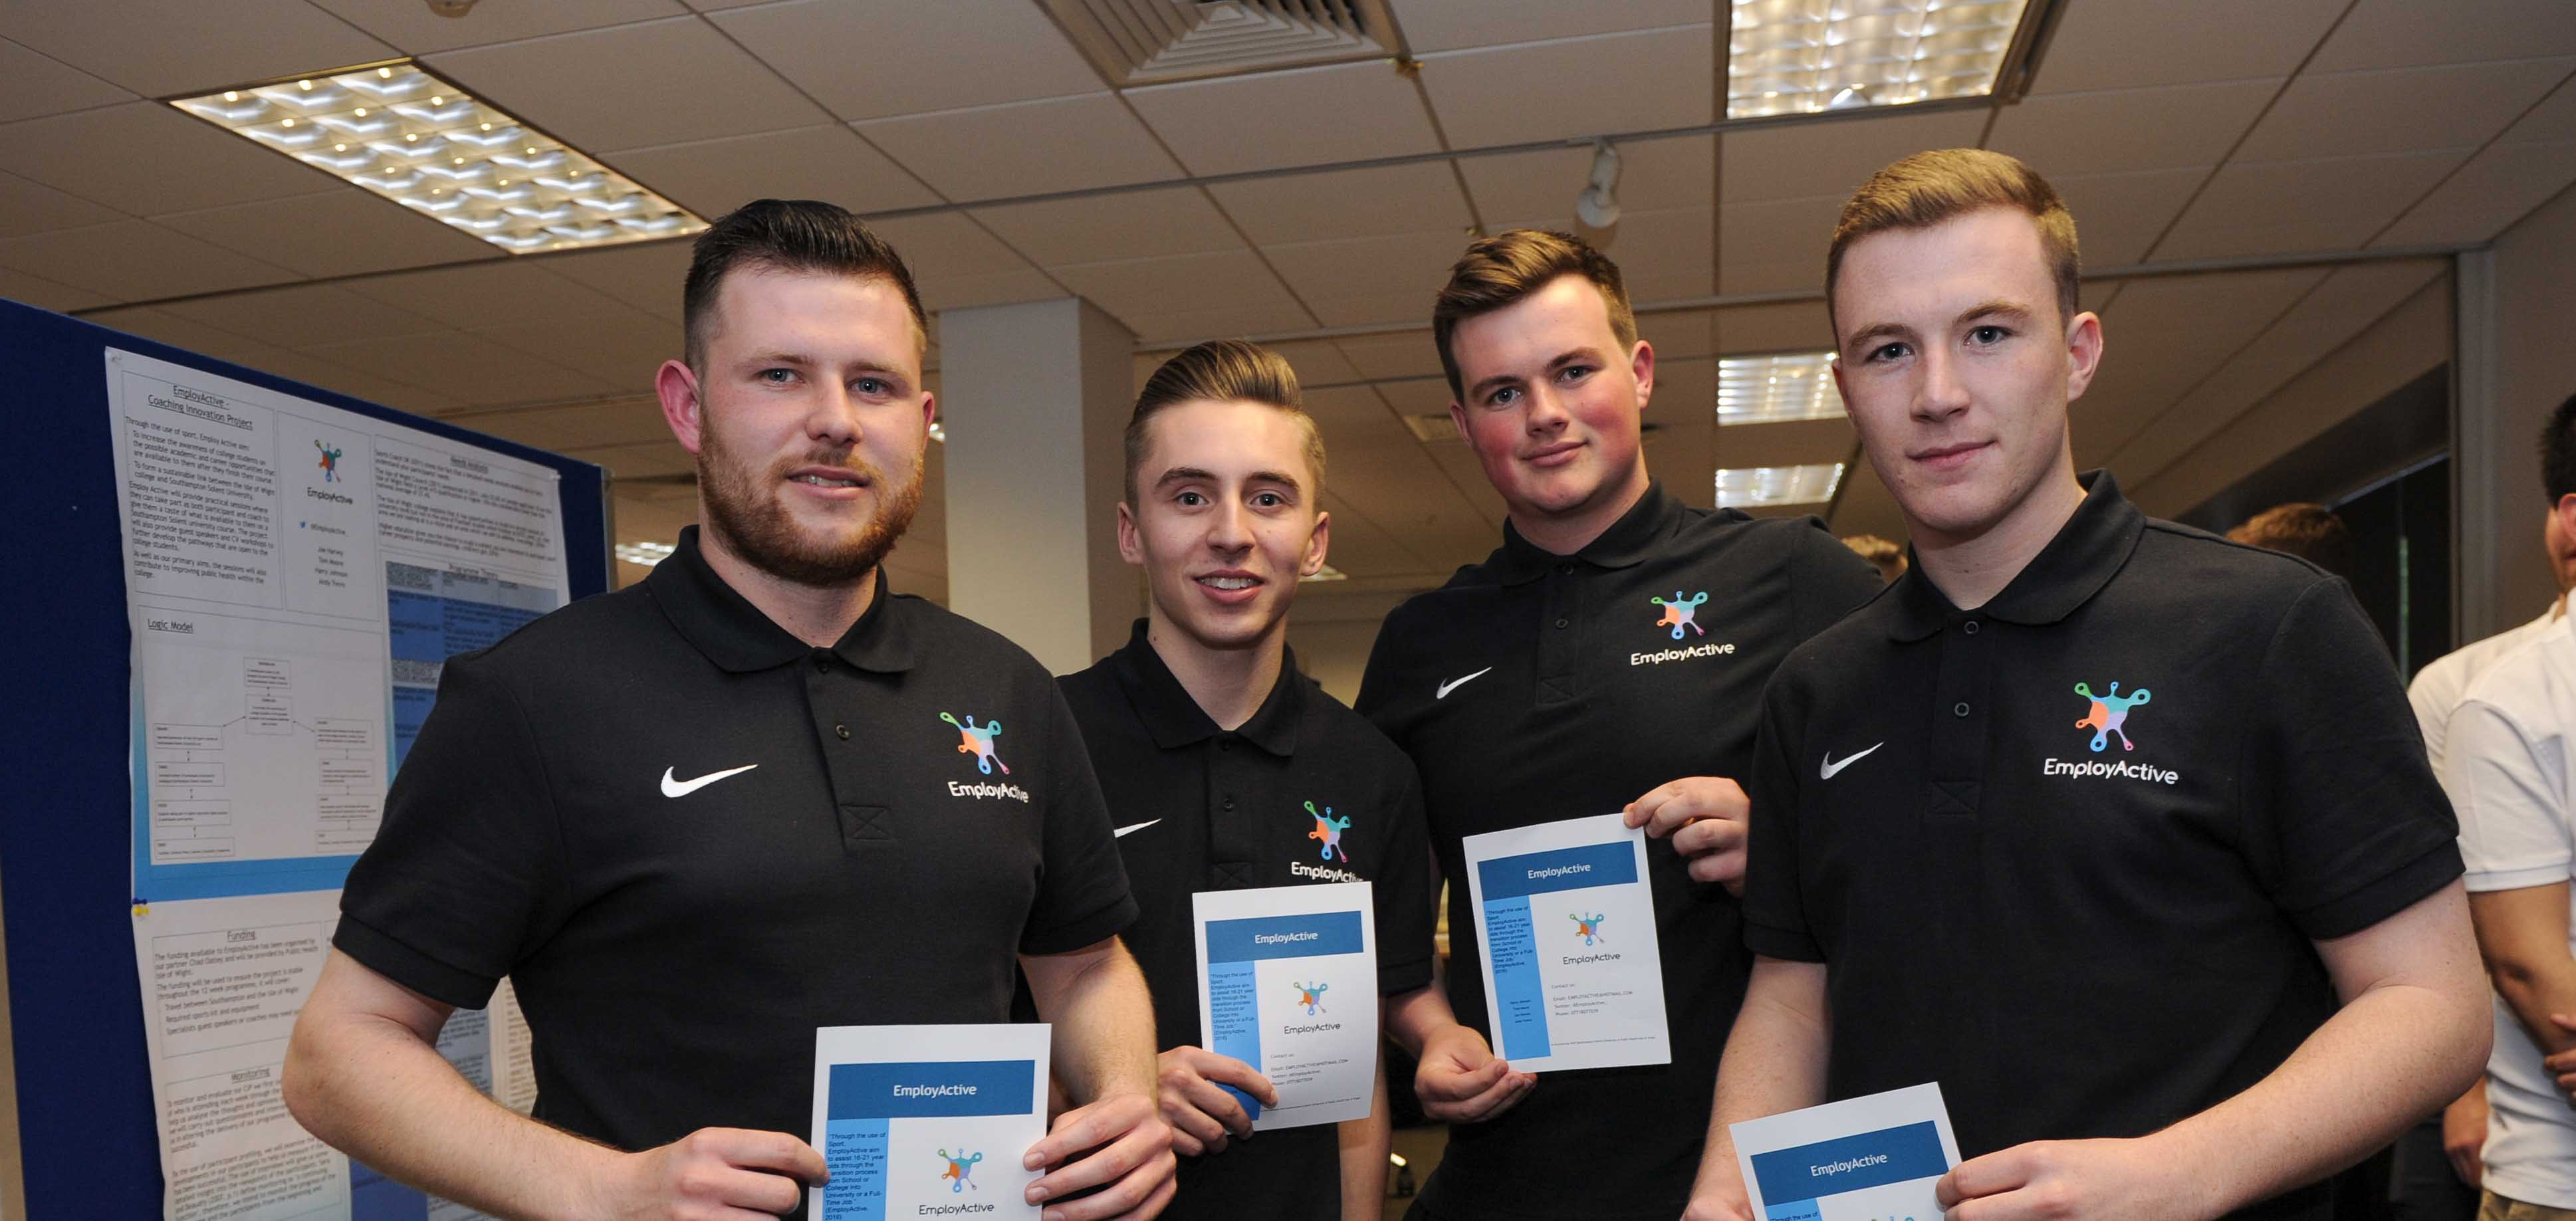 The Employ Active team: Andrew Trevis, Harry Johnson, Joe Harvey and Thomas Moore